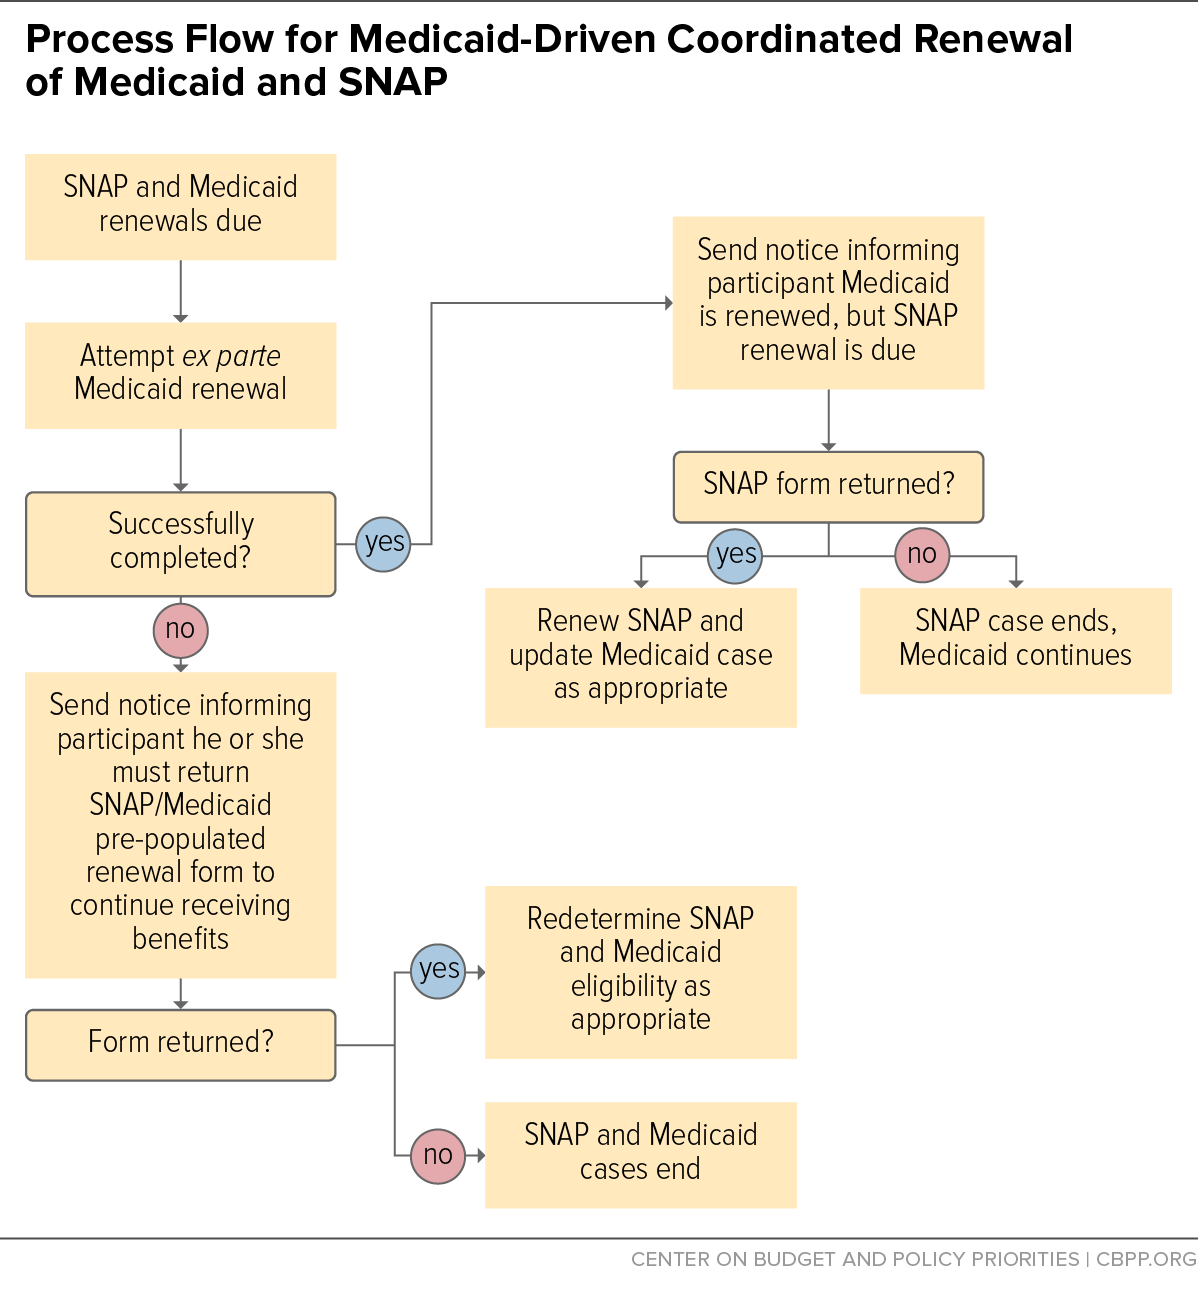 Process Flow for Medicaid-Driven Coordinated Renewal of Medicaid and SNAP